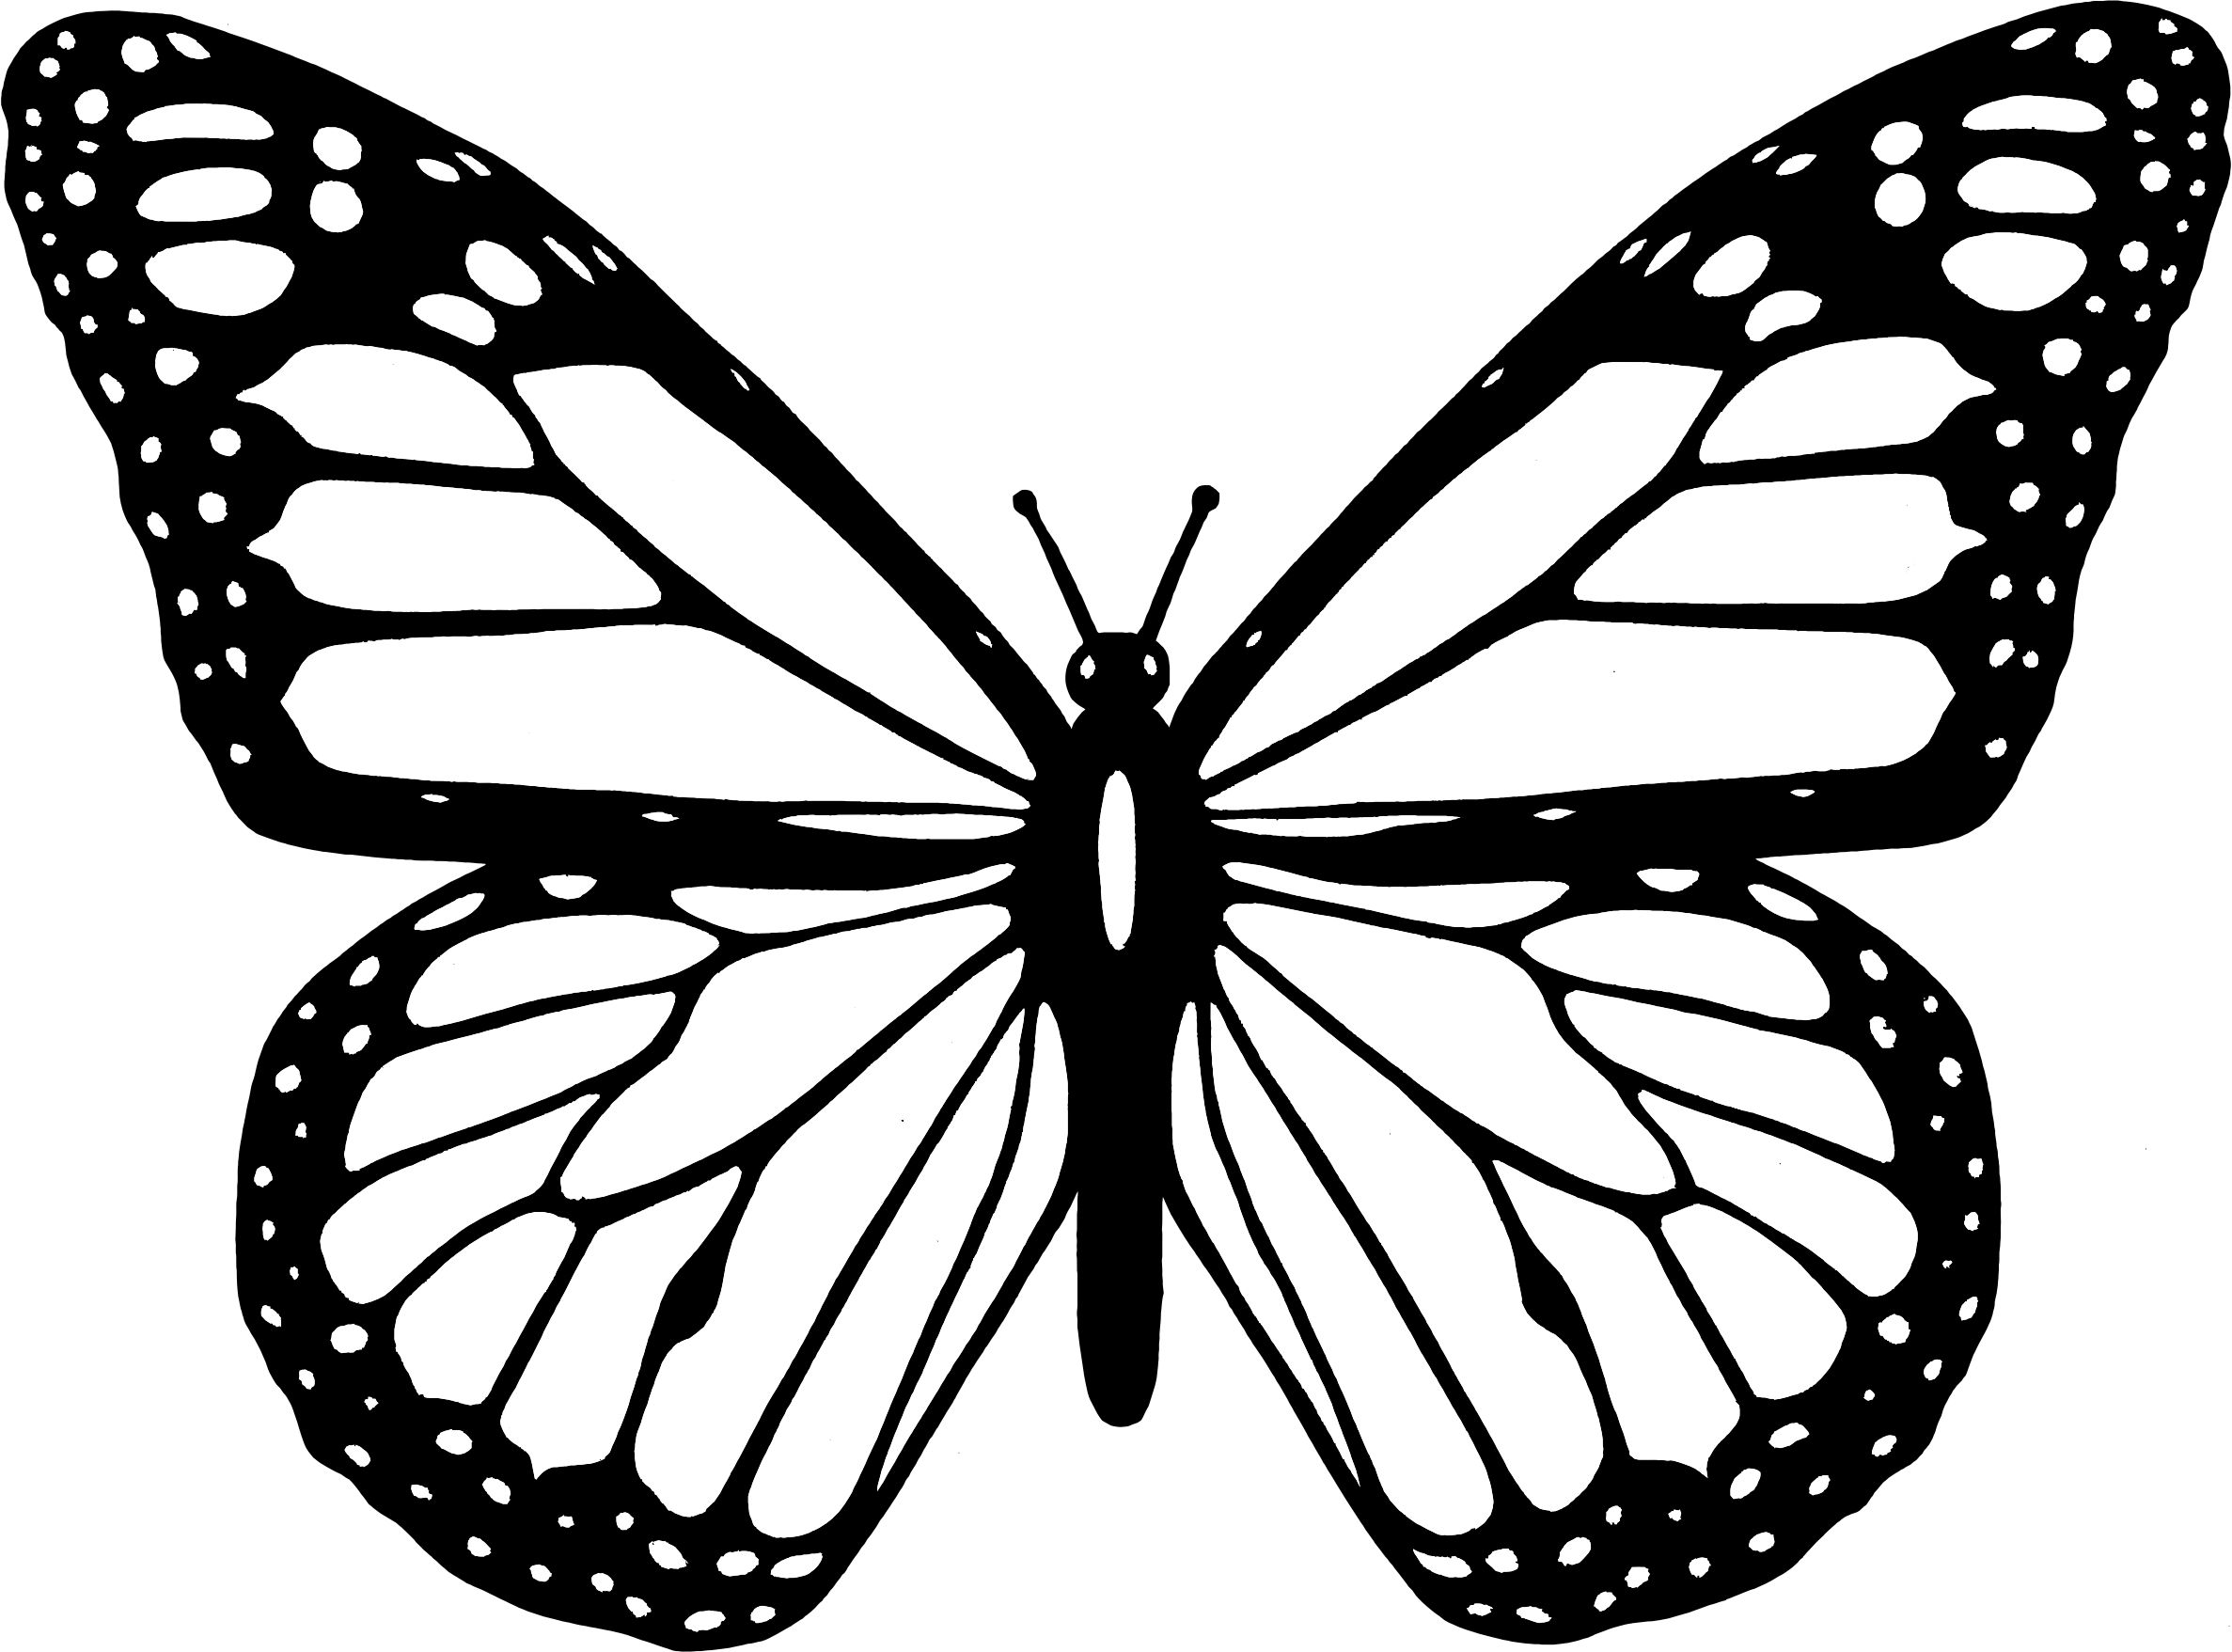 clipart black and white Black and white butterfly. Monarch clipart butter fly.